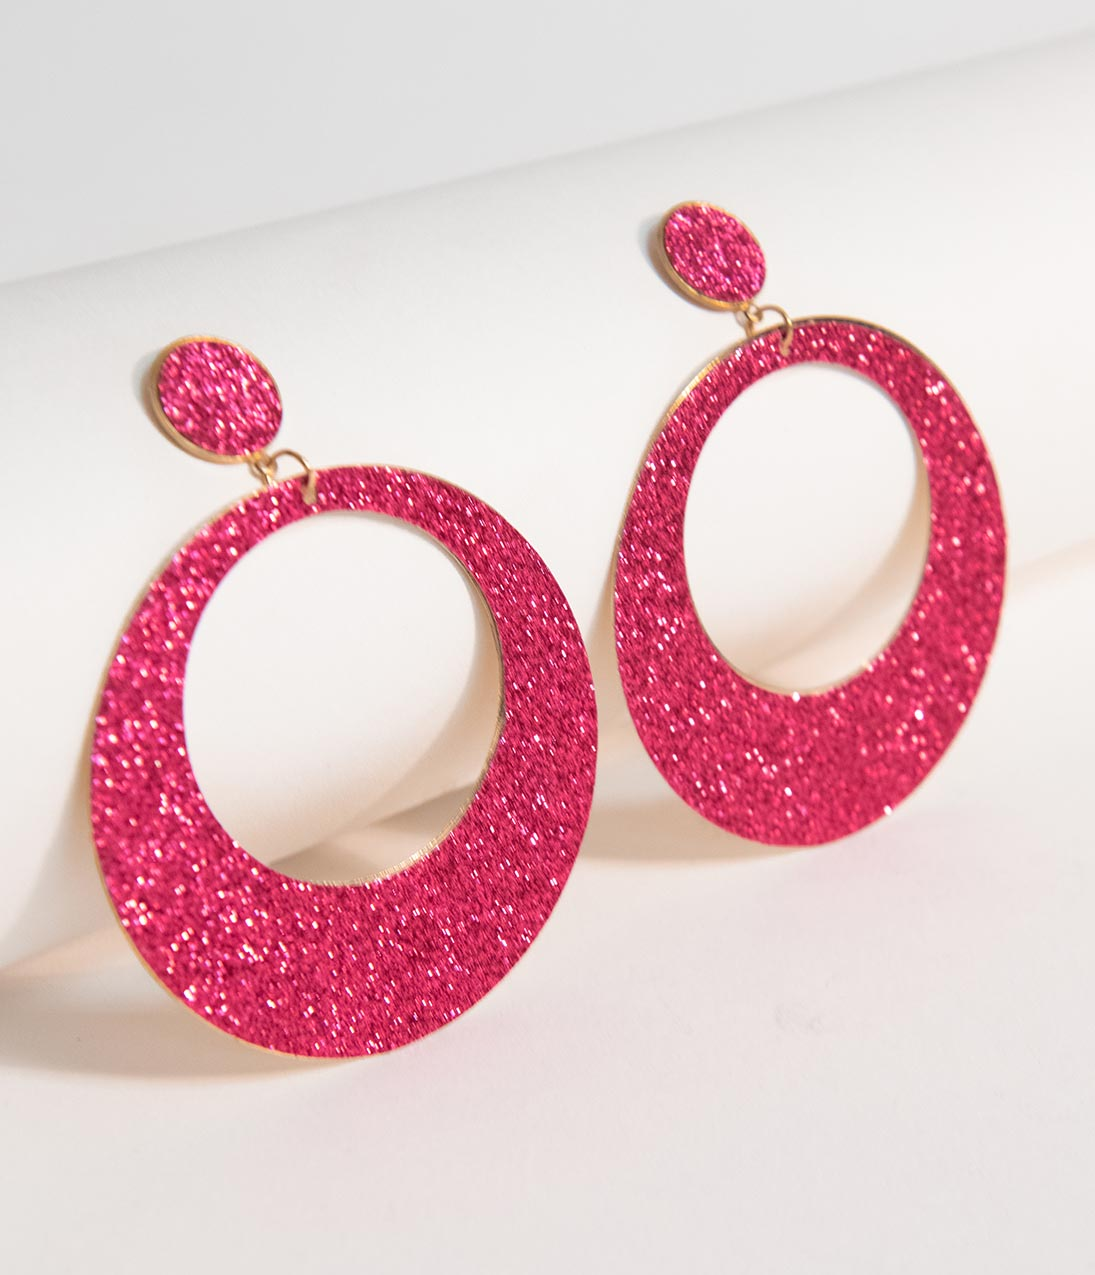 Vintage Style Jewelry, Retro Jewelry Pink Glitter Hoop Circle Drop Earrings $12.00 AT vintagedancer.com